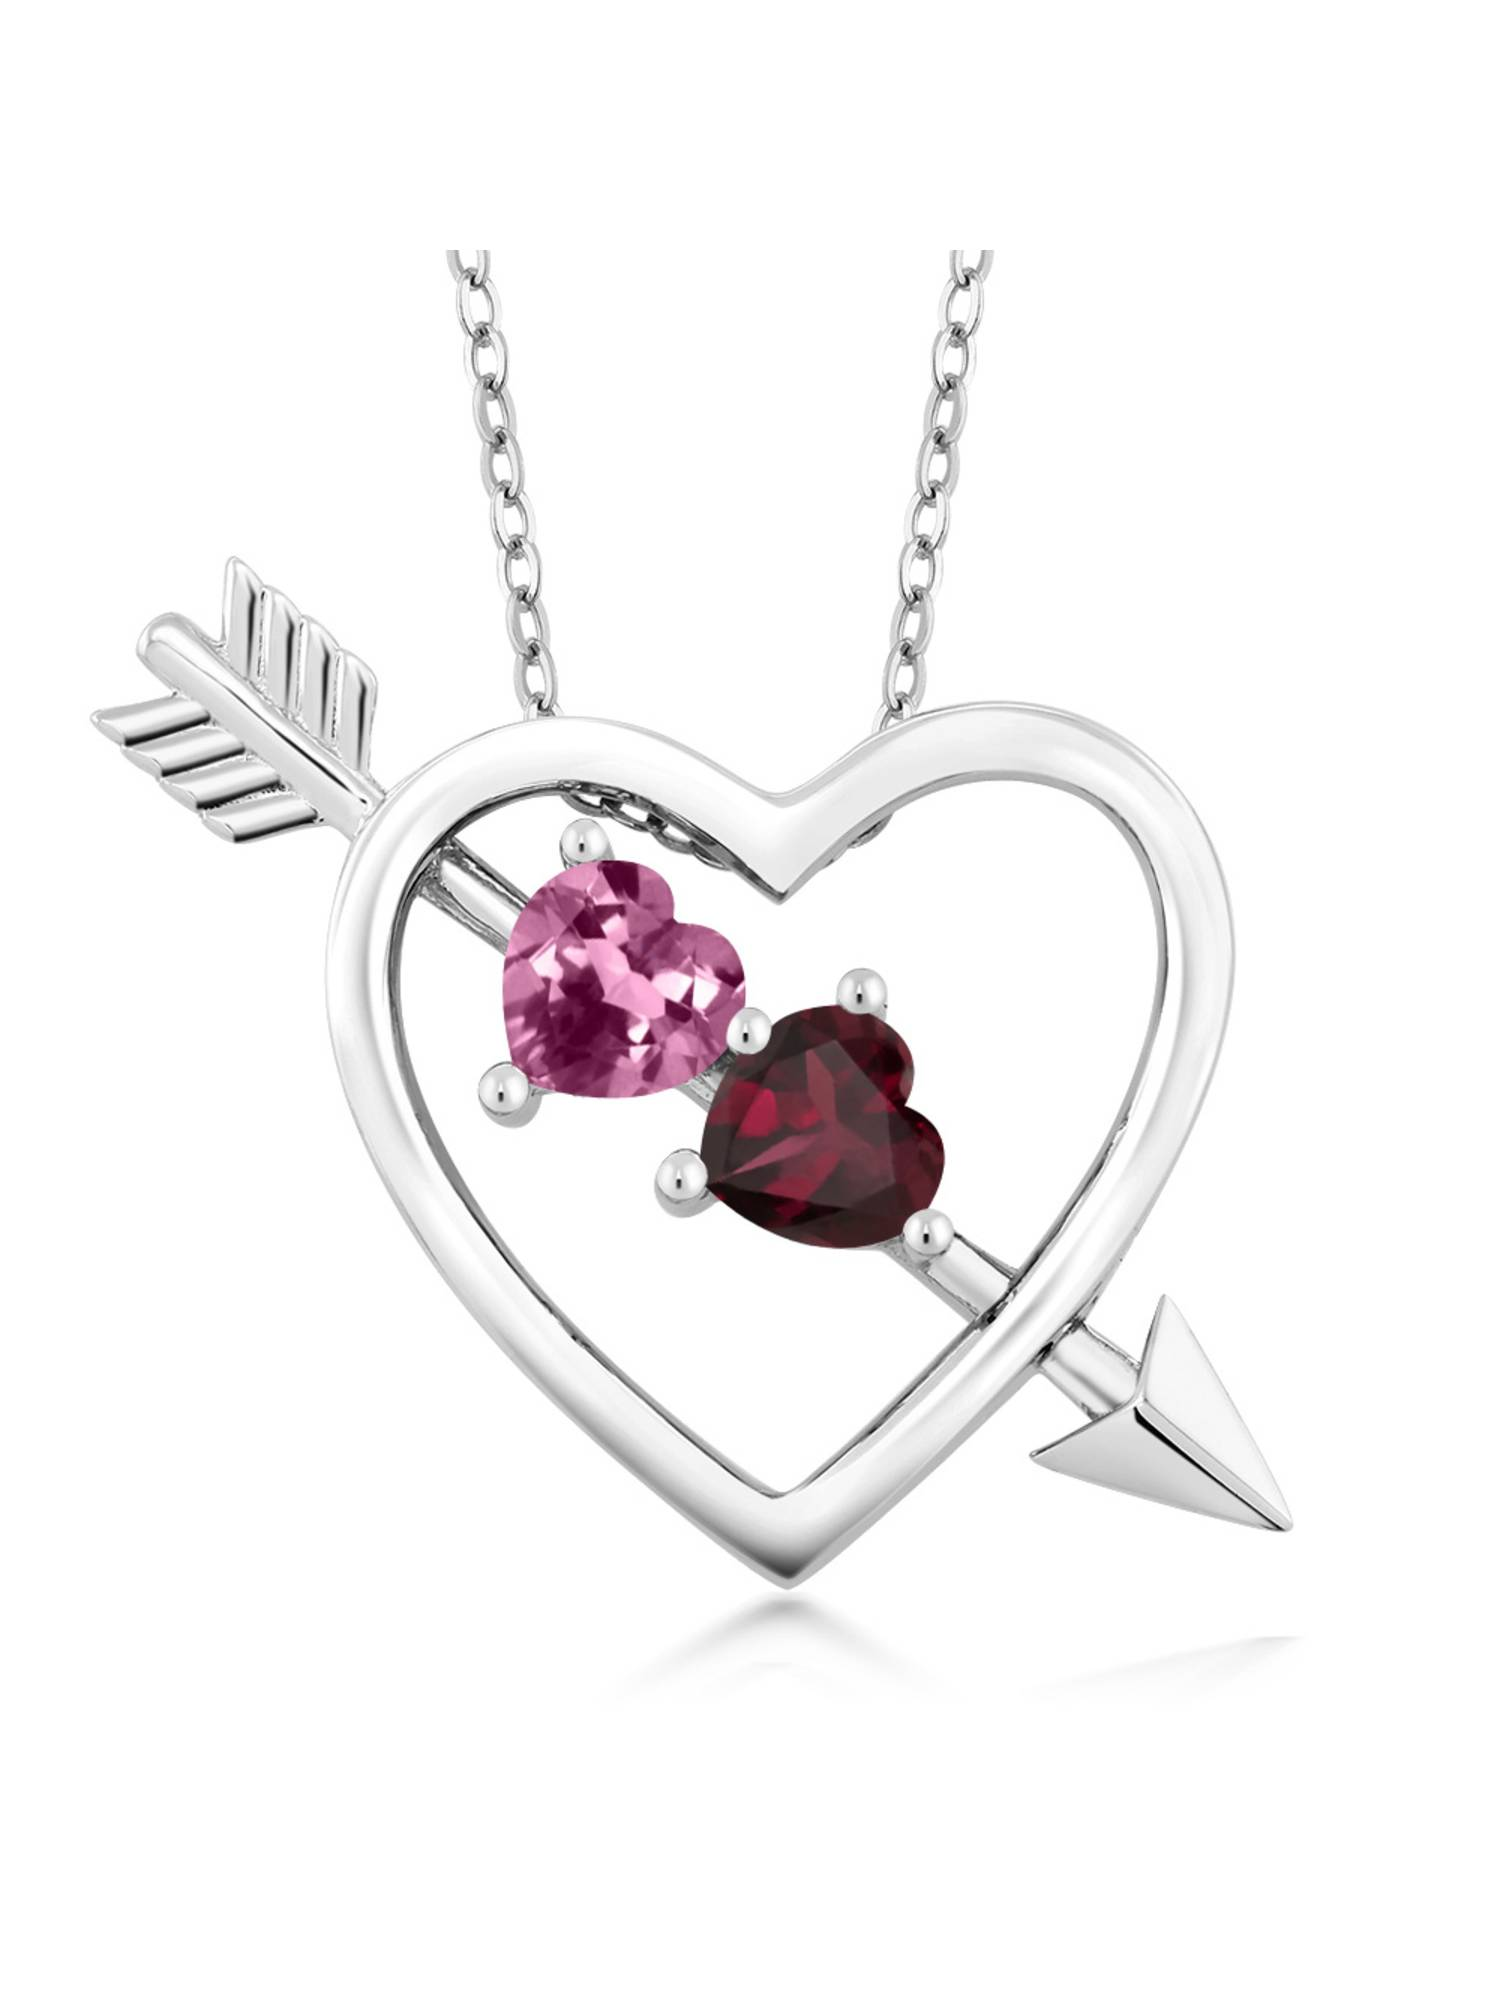 0.99 Ct Pink Tourmaline Red Rhodolite Garnet 925 Silver Heart and Arrow Pendant by